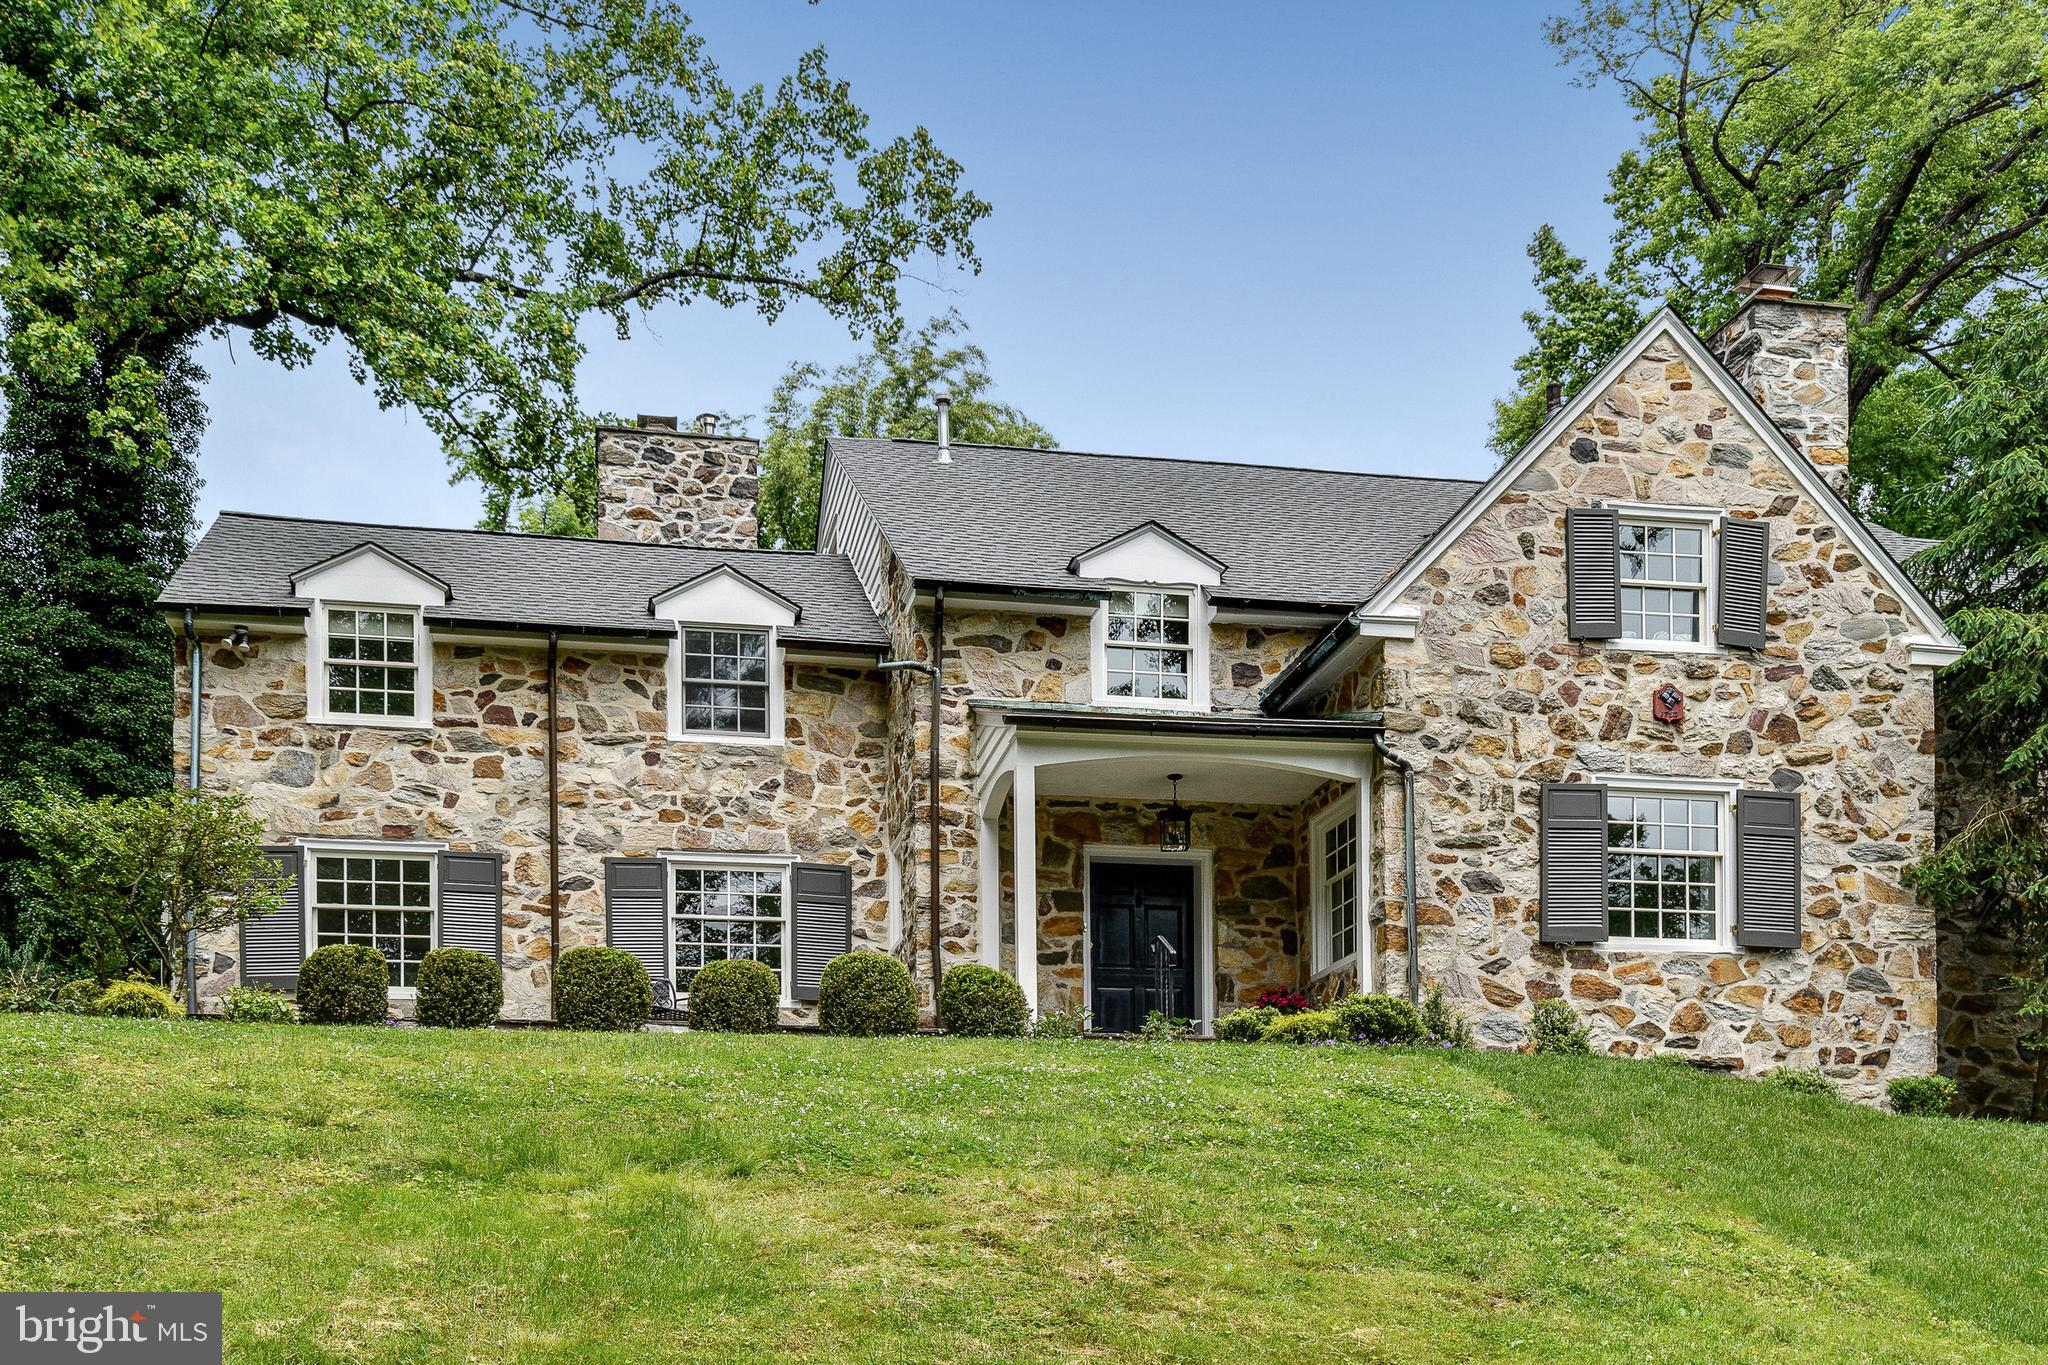 """This is a modernized 1-acre stone home that pays respectful homage to its original 1940 classic Main Line roots. Enter up to the home from the long private driveway through the original stone pillars etched with """"Indian Hill"""" as the home was nicknamed by its original owners' son who used to find stone arrowheads all over the property as a boy. This five bedroom, three full/two half bath home has space for everyone and more. The first floor has large sunny rooms and a redesigned floor plan with amazing flow. The living room offers deep-sill windows, fireplace with classic mantel and marble surround plus a large sunny bay window. The private library / home office is full of windows and a second fireplace. The spacious formal dining room too has a bay window and it transitions to the fully fitted butler's pantry complete with Fisher Paykel dishwasher, bar sink, bev/wine refrigerator, and ice cube maker along with tons of cabinetry. Continue to the beautiful open-concept kitchen, planned so that it is efficient for the cook. The kitchen includes professional Viking stove, newer dishwasher, new 42"""" refrigerator, microwave drawer, warming drawer, classic white cabinetry, stone backsplash, stainless farm sink and soapstone Silestone counters. The Carrera island has its own filtered water. The accompanying family room is lined with windows, built in surround sound and a desk area that leads to mud room. A back stairway leads up to the second and third levels. Upstairs the master suite is bright, sunny and boasts a bay window overlooking the gardens, plus it's own private deck, and a dressing area with a custom-fitted walk-in closet. The massive seamless glass master bath shower is state-of-the-art, with two walls full of nozzles, showerheads and two vanities. A second large master with en-suite bath also has access to the second-floor deck.  Completing the second floor are two other large sunlit bedrooms with generous closet space and jack and jill bath. On the top floor, a"""